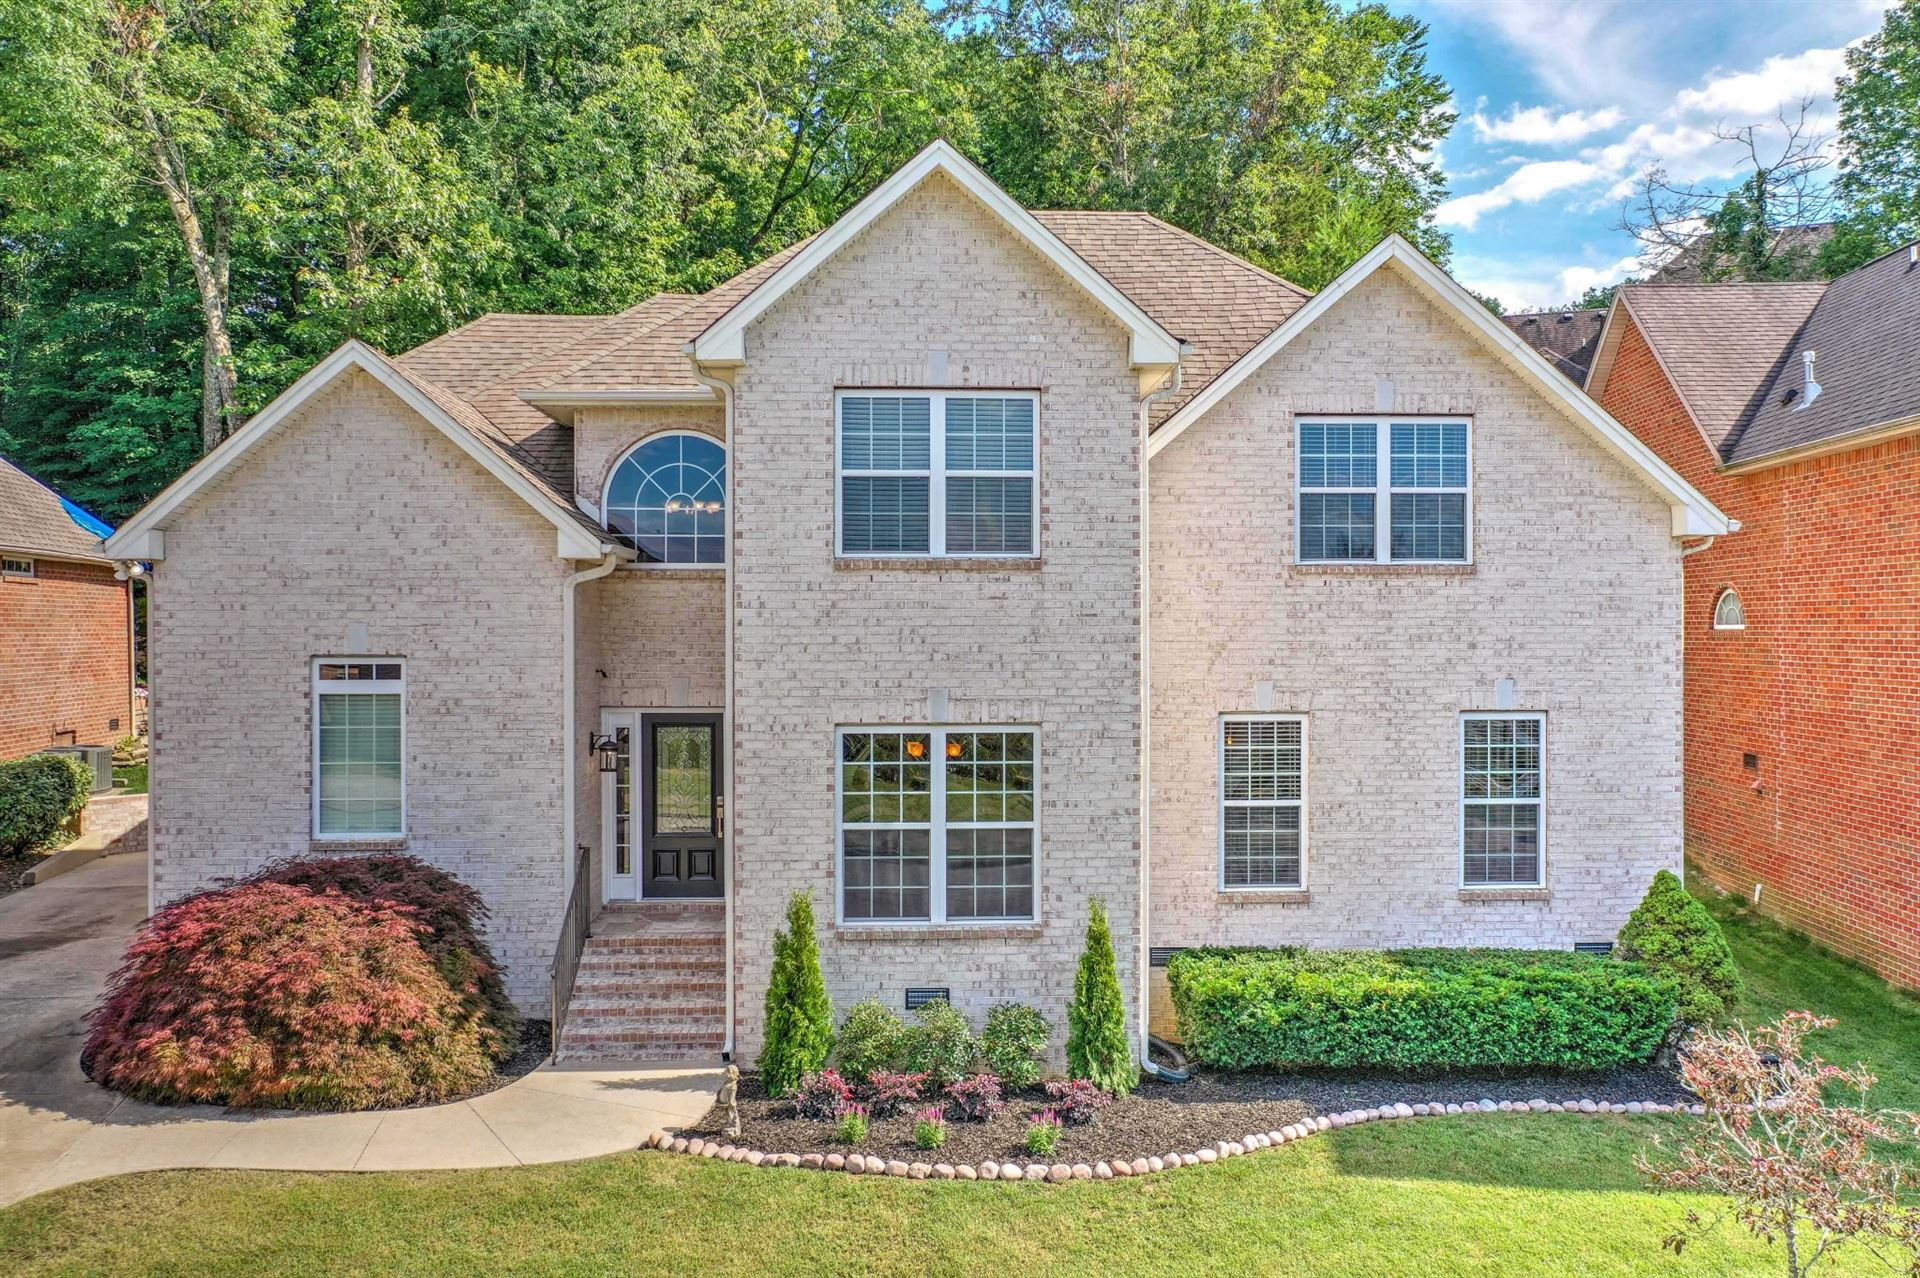 1308 Weeping Cherry Ln, Hermitage, TN 37076 - MLS#: 2163242